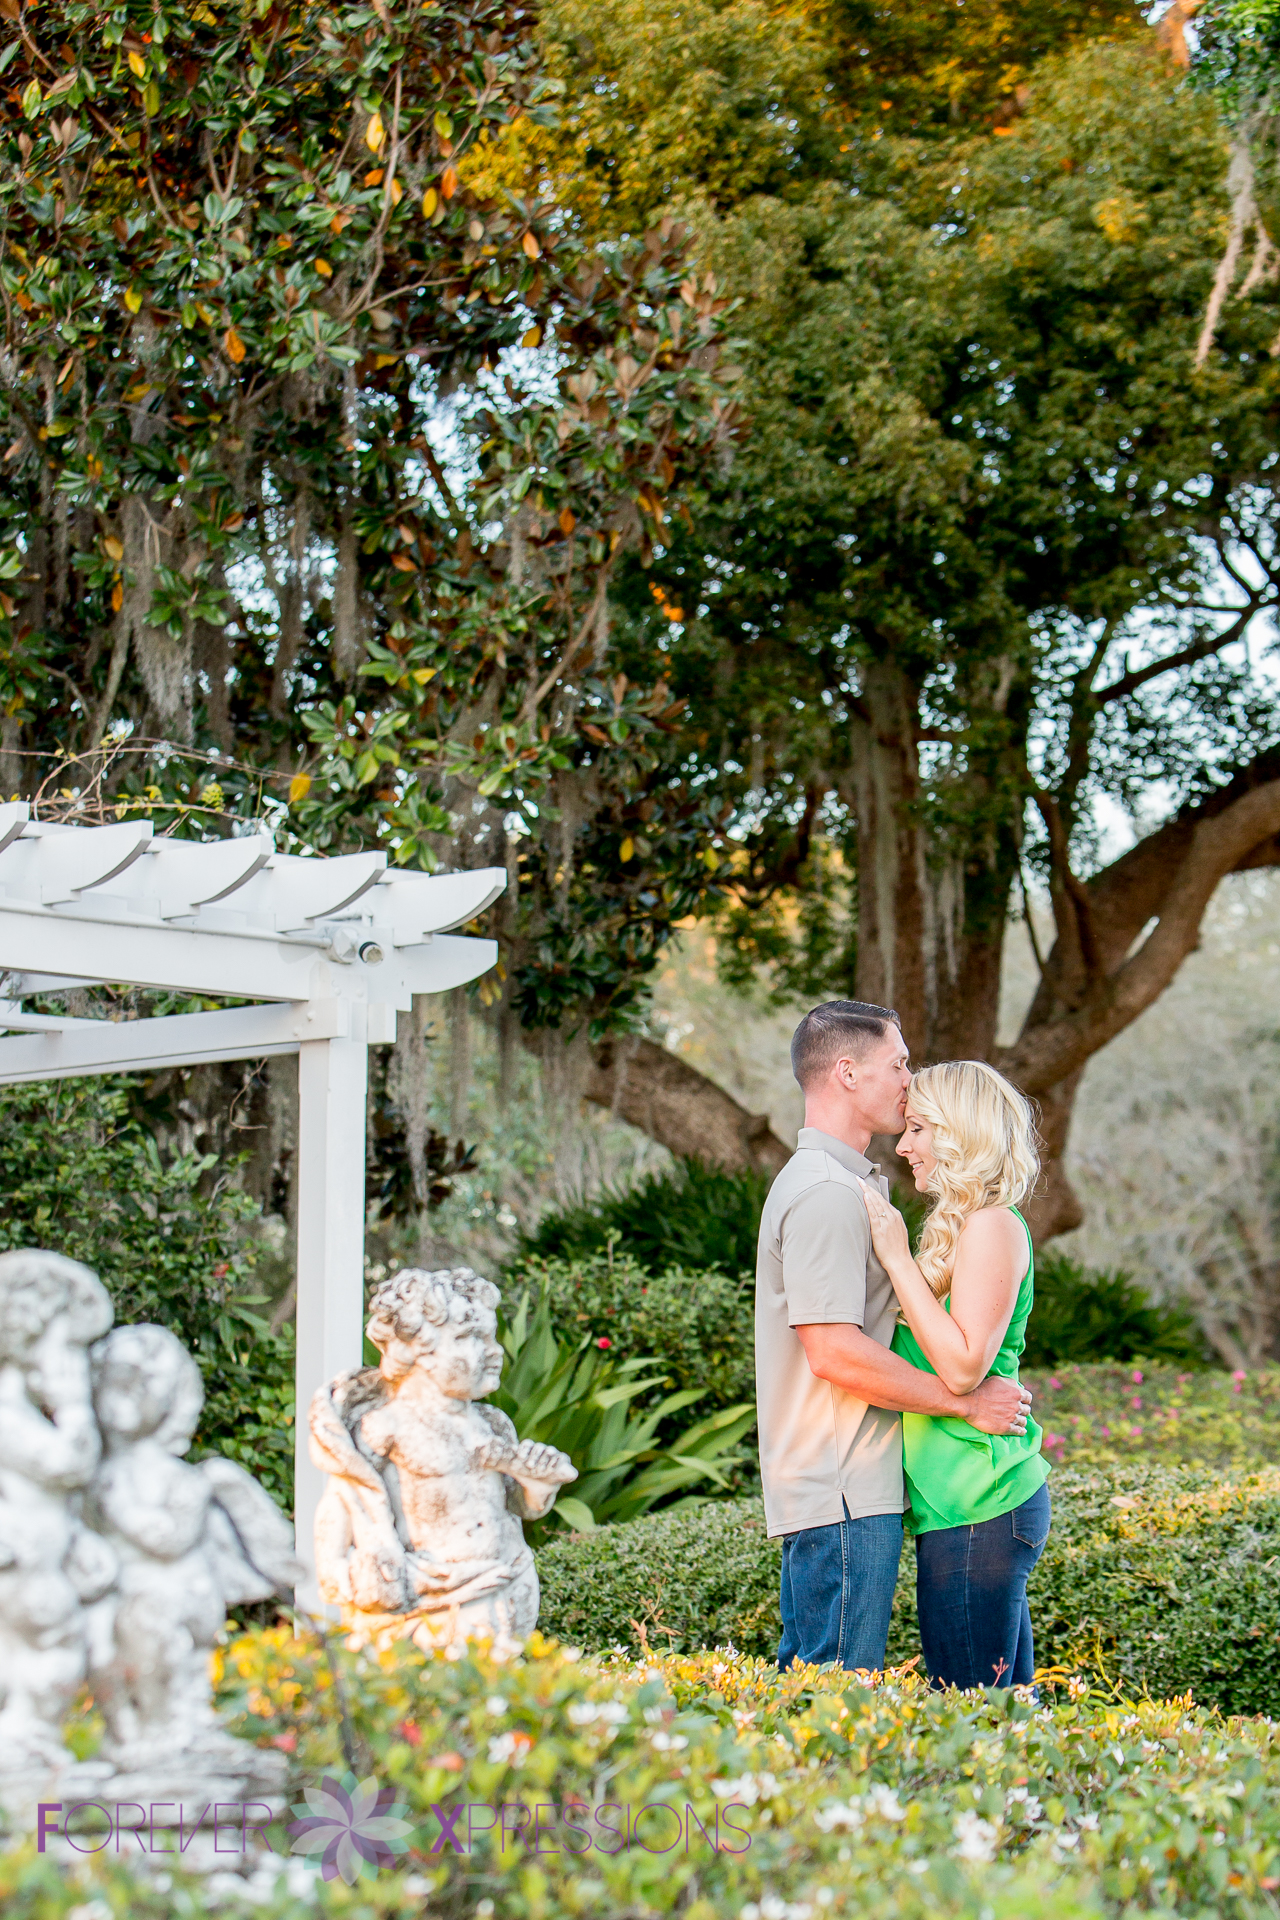 Forever_Xpressions_Engagement_Session_Orlando-1591